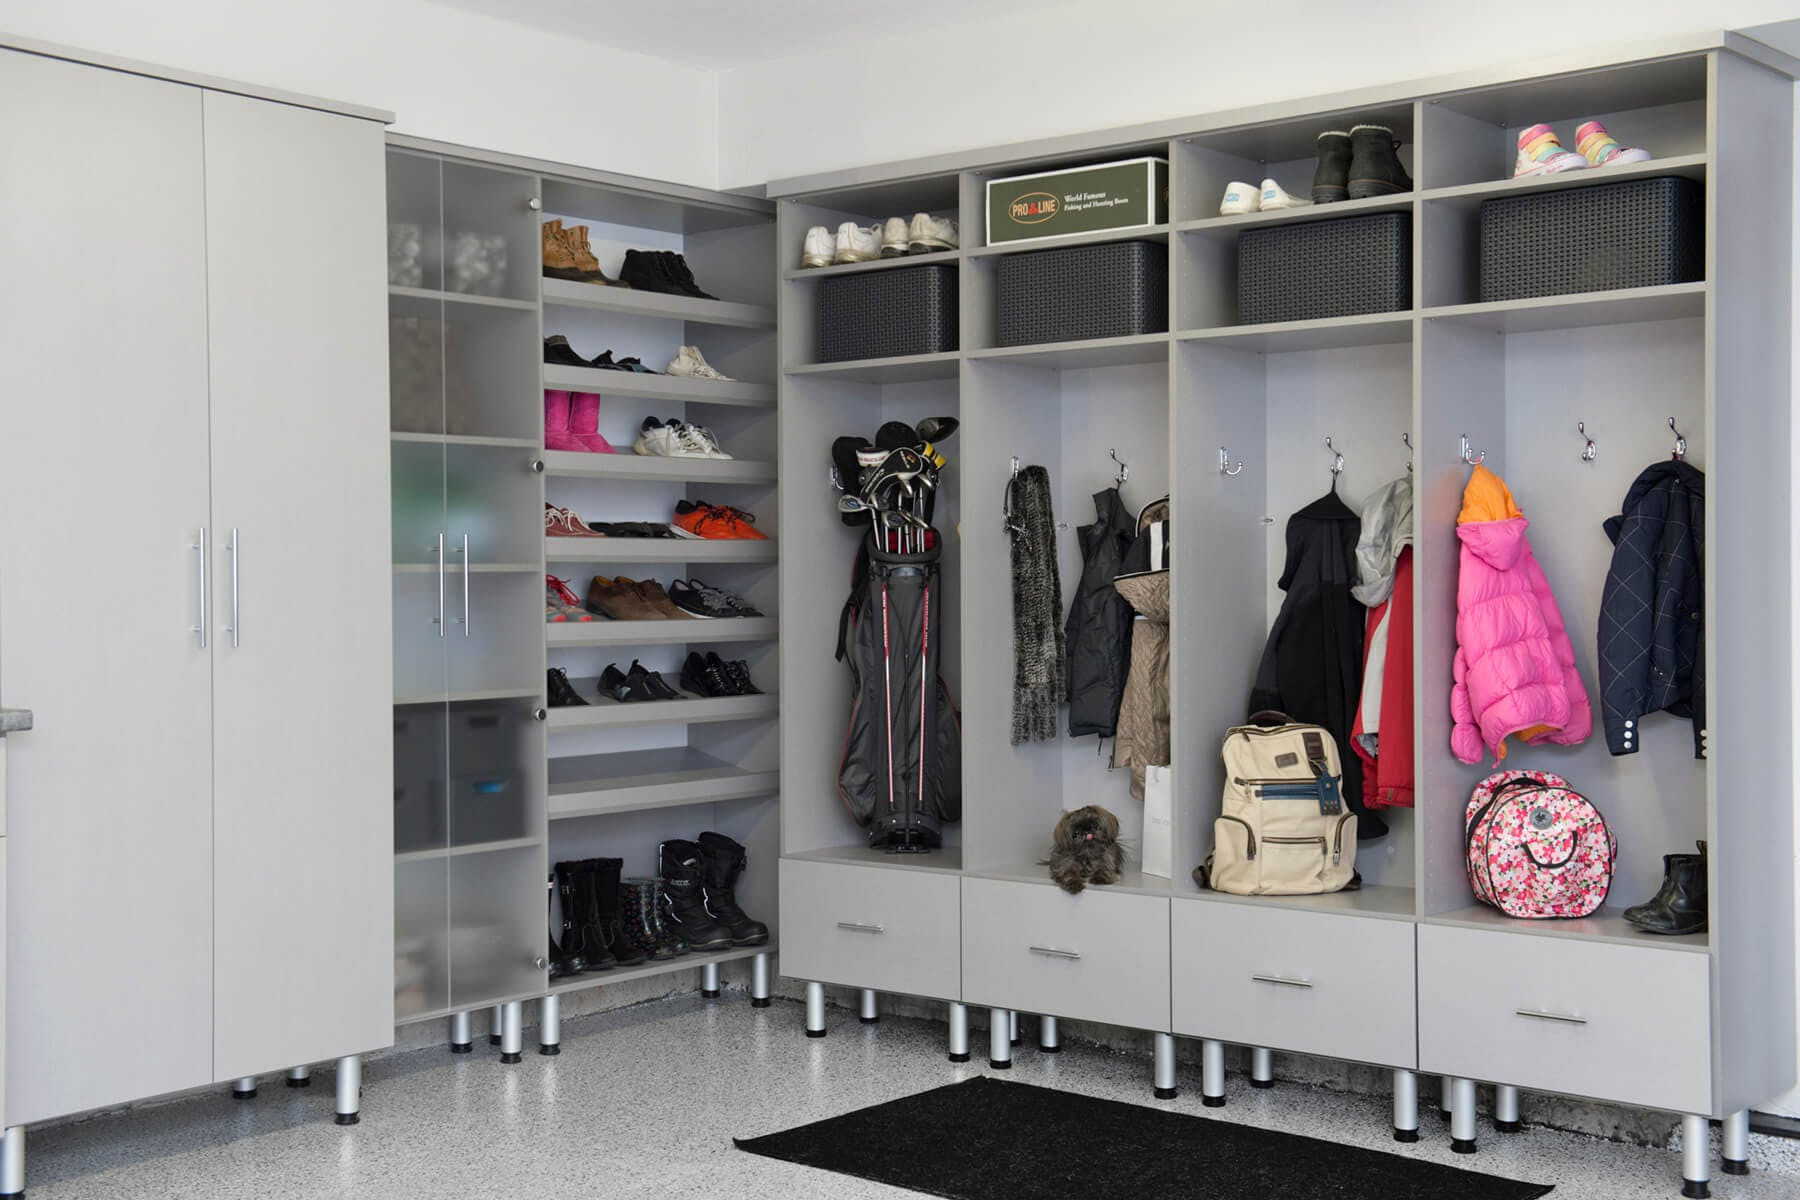 of have dreams closets the drawers closet organizers to room systems buy how where cabinet laundry concepts for adjustable white bedroom storage system your ideas organizer classy master extra coat